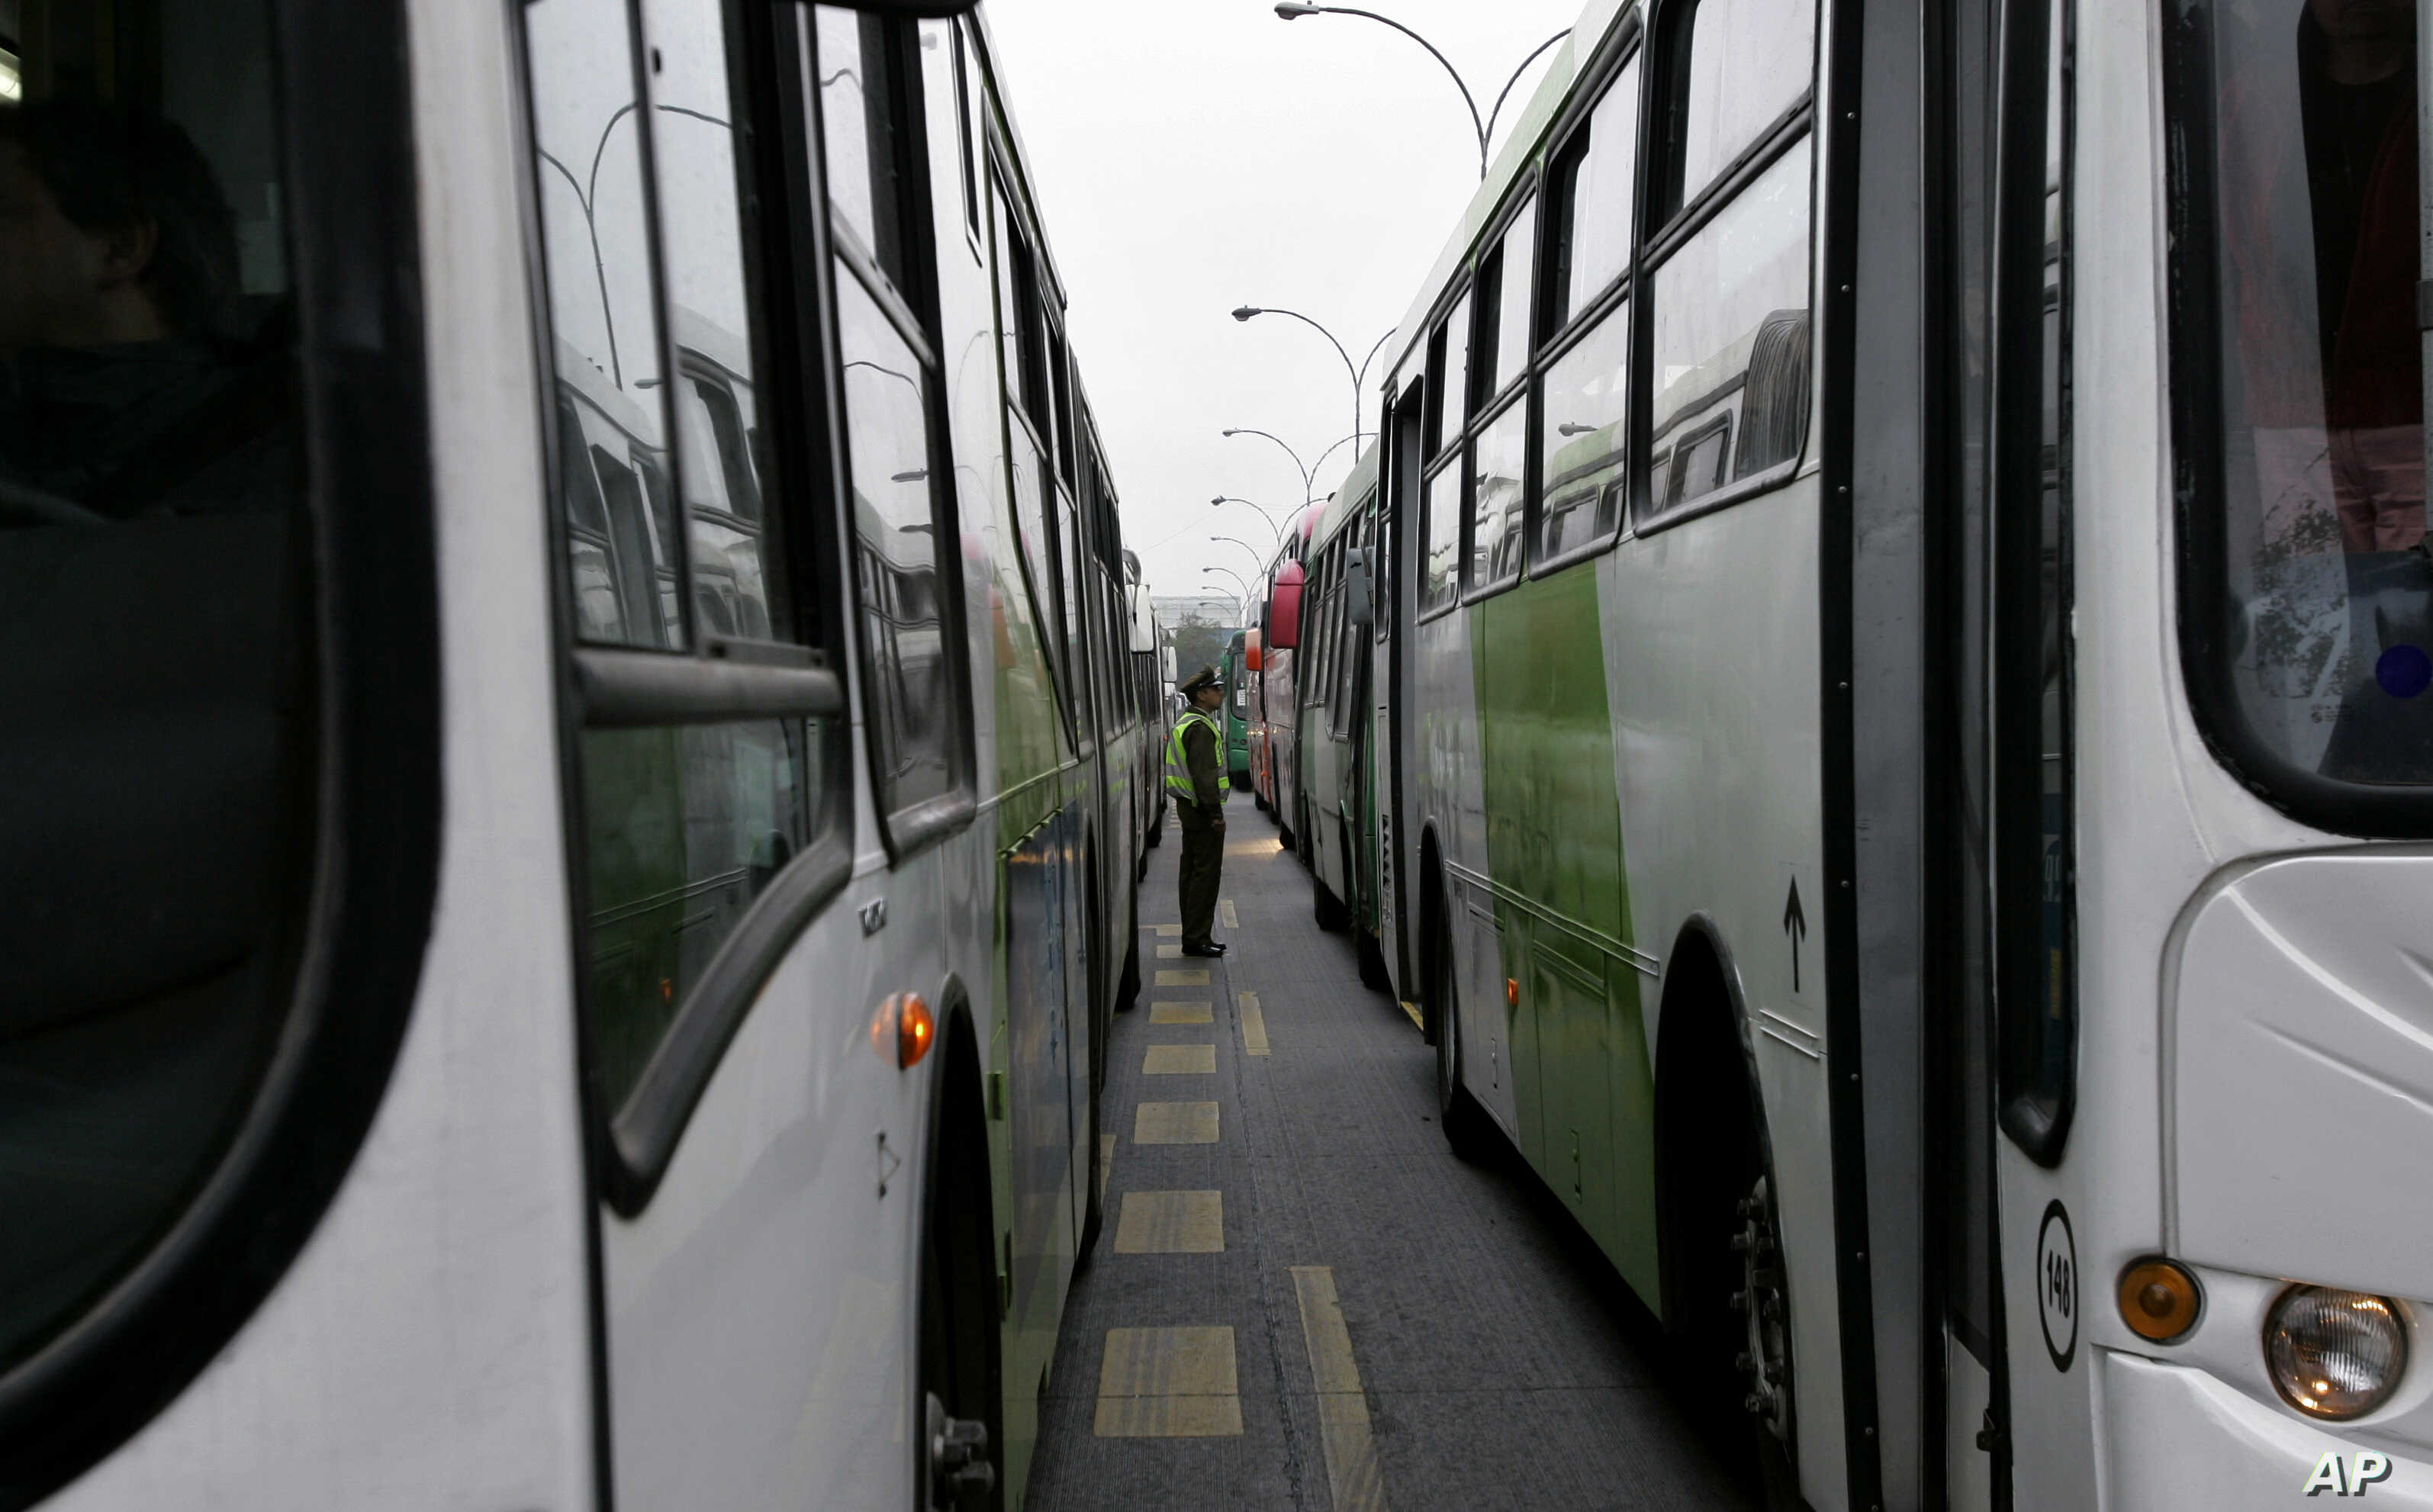 Chilean Capital Draws International Interest in $500M Bus Contract